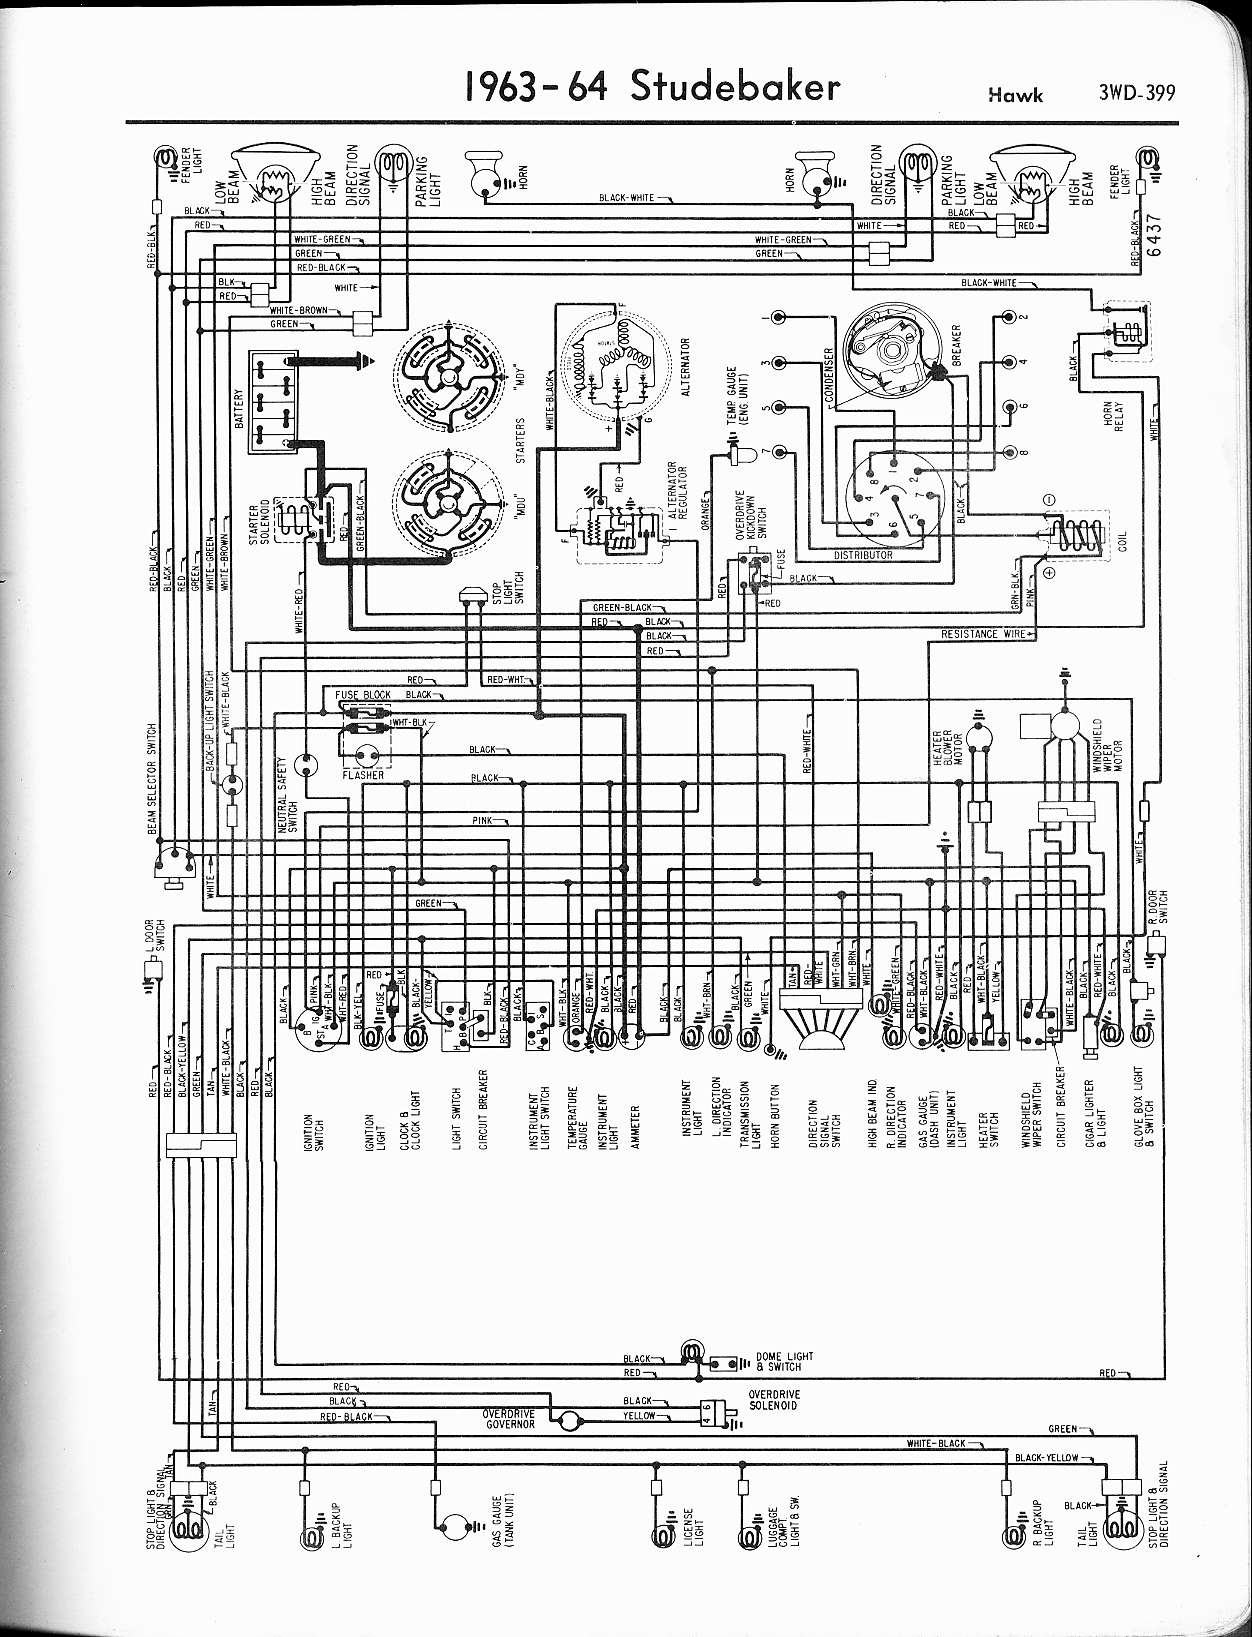 Studebaker wiring diagrams - The Old Car Manual Project on studebaker parts, studebaker wheels, m29 weasel wire diagrams, studebaker engines, studebaker frame, studebaker wiring harness,